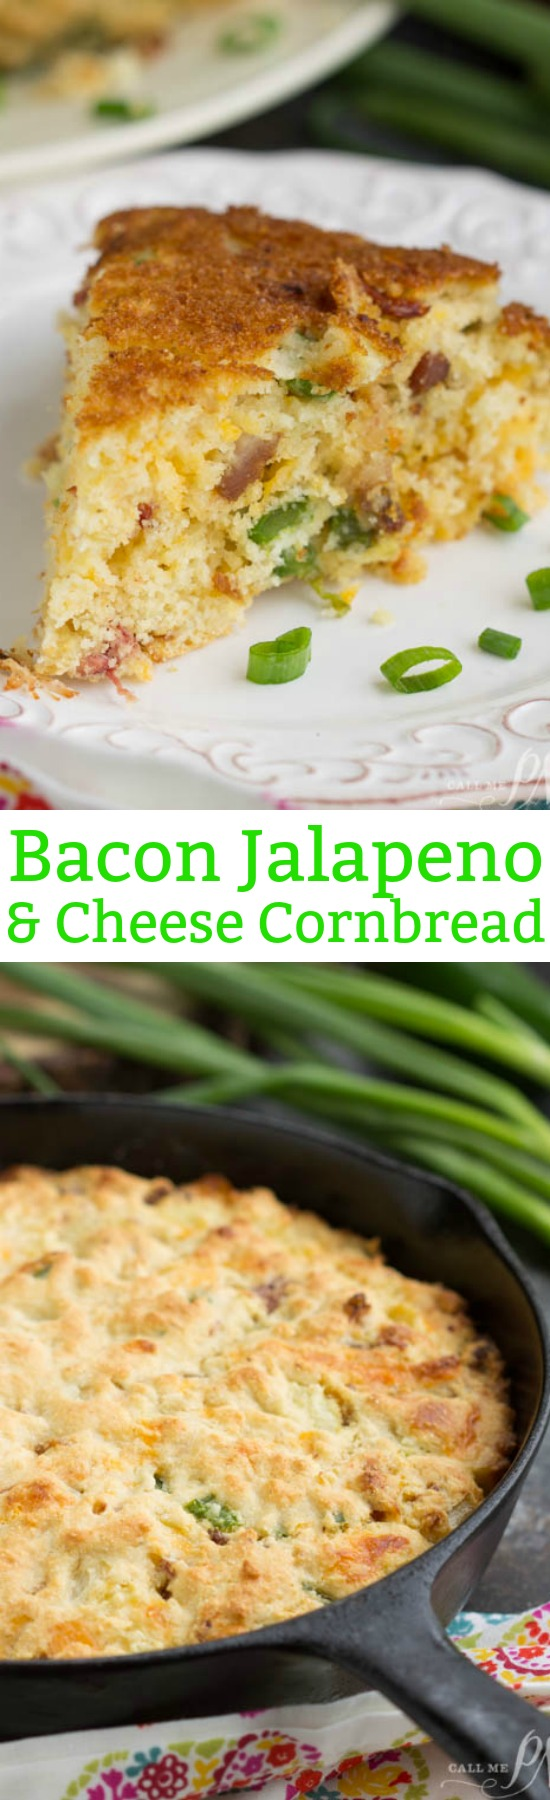 Slightly sweet and savory, Southern Cheesy Jalapeno Bacon Skillet Cornbread, is full of smokey bacon, spicy jalapenos, and cheese. Alone or as a side, this cornbread recipe is delectable!